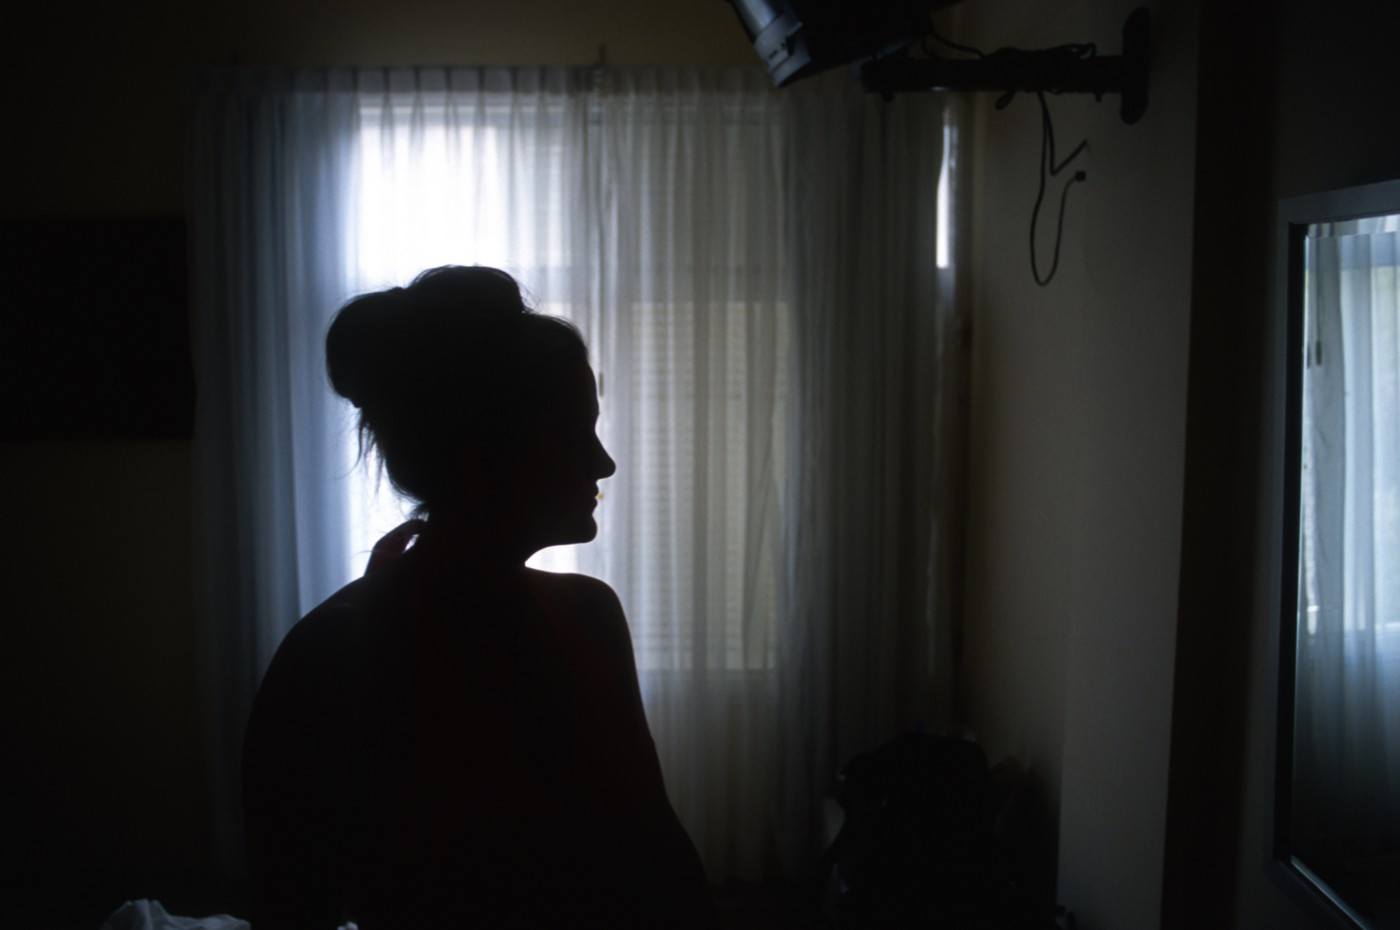 Silhouette of a woman in a room.